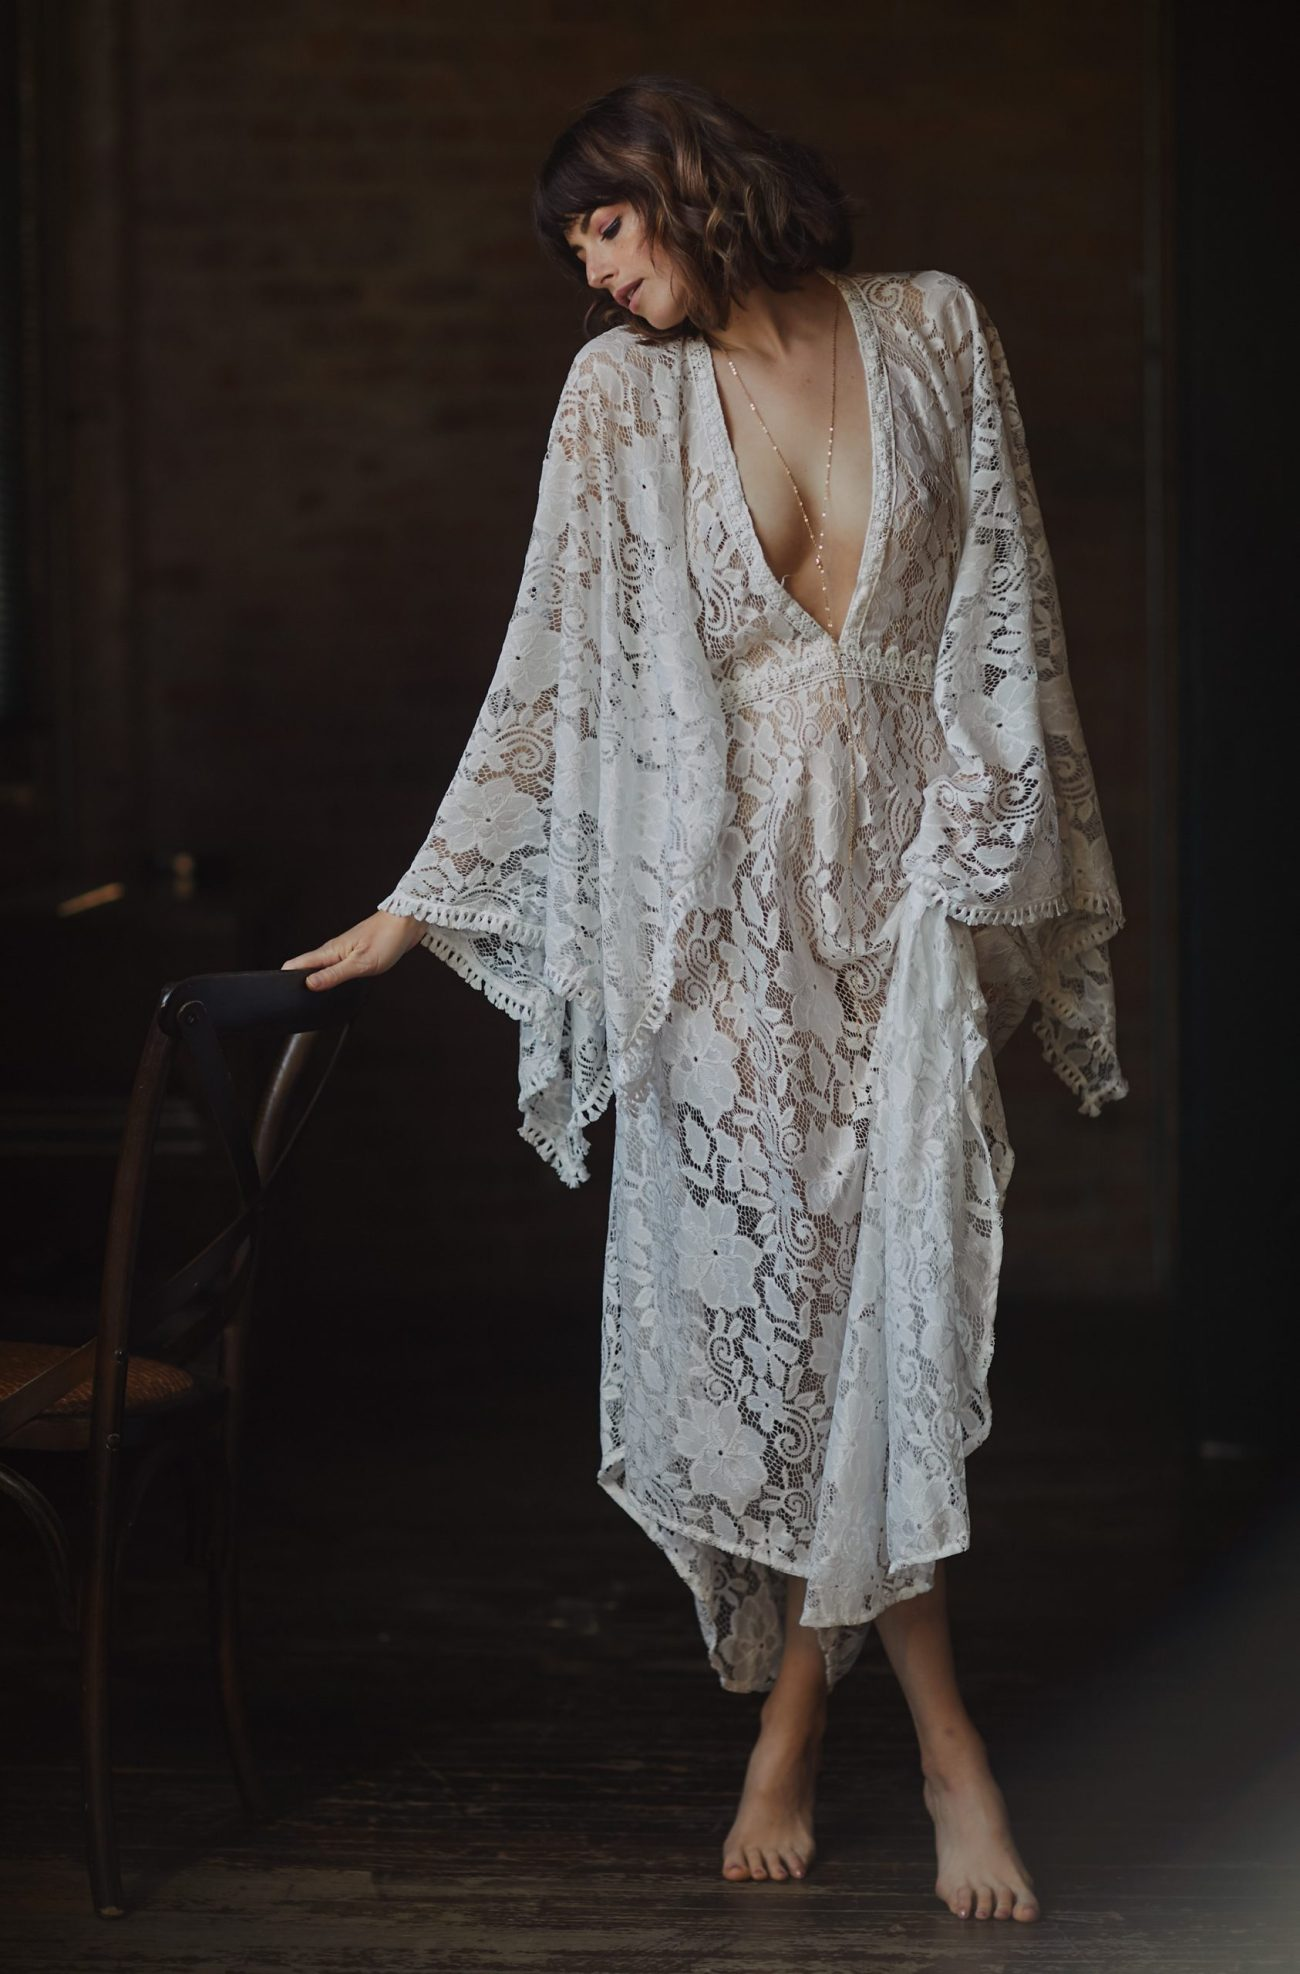 vintage boudoir sexy classy chicago scaled - A Boudoir Session - Is It Worth the Investment?